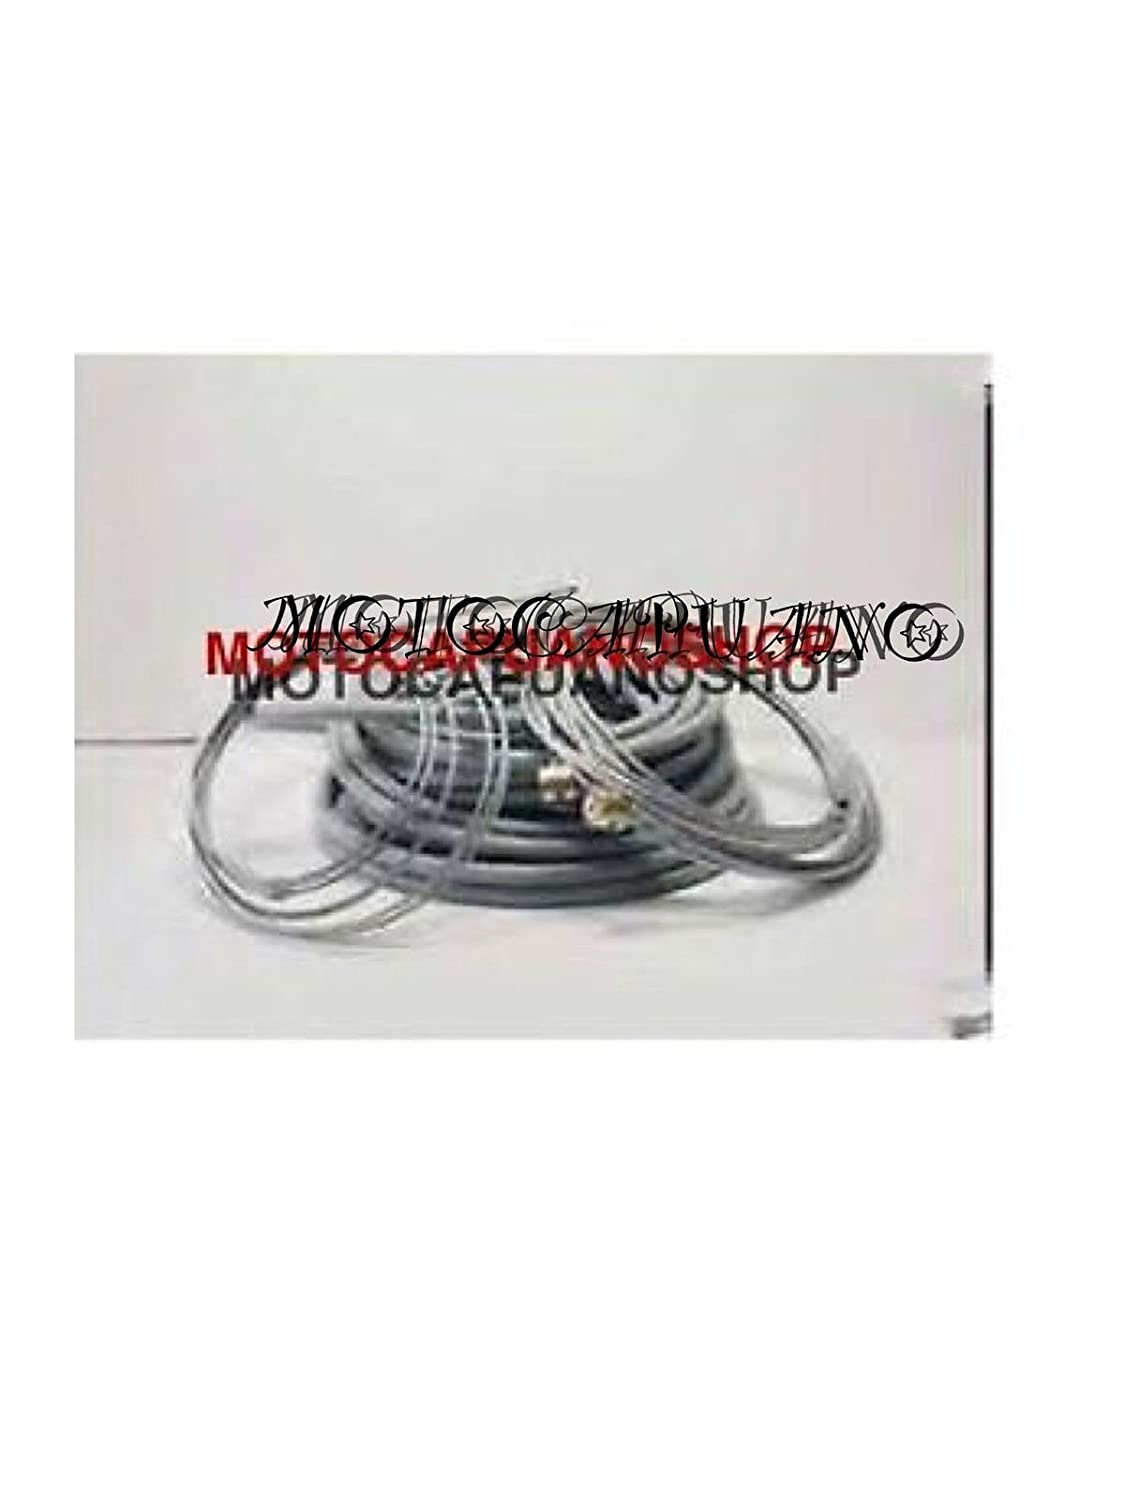 Kit Hilos Cables Cambio embrague freno completos Vespa 125 VNB 150 Super: Amazon.es: Coche y moto